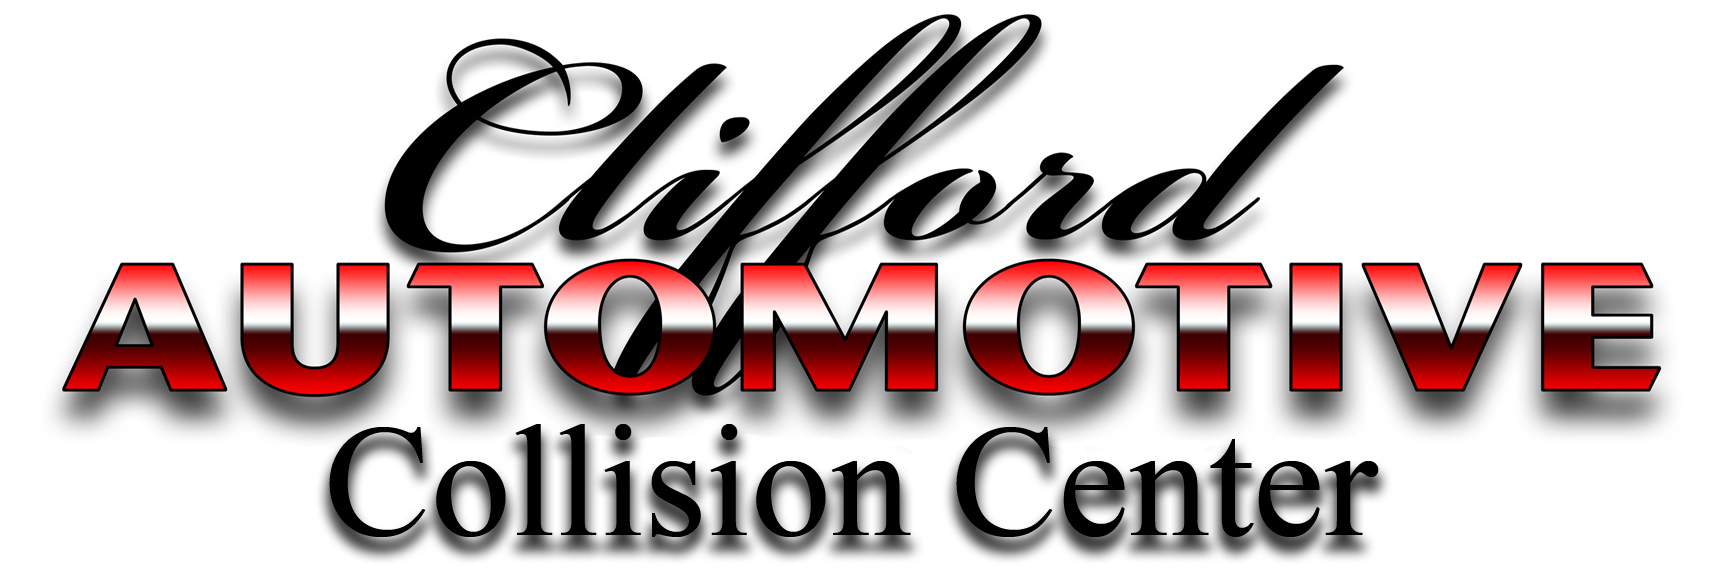 Clifford Automotive Collision Center